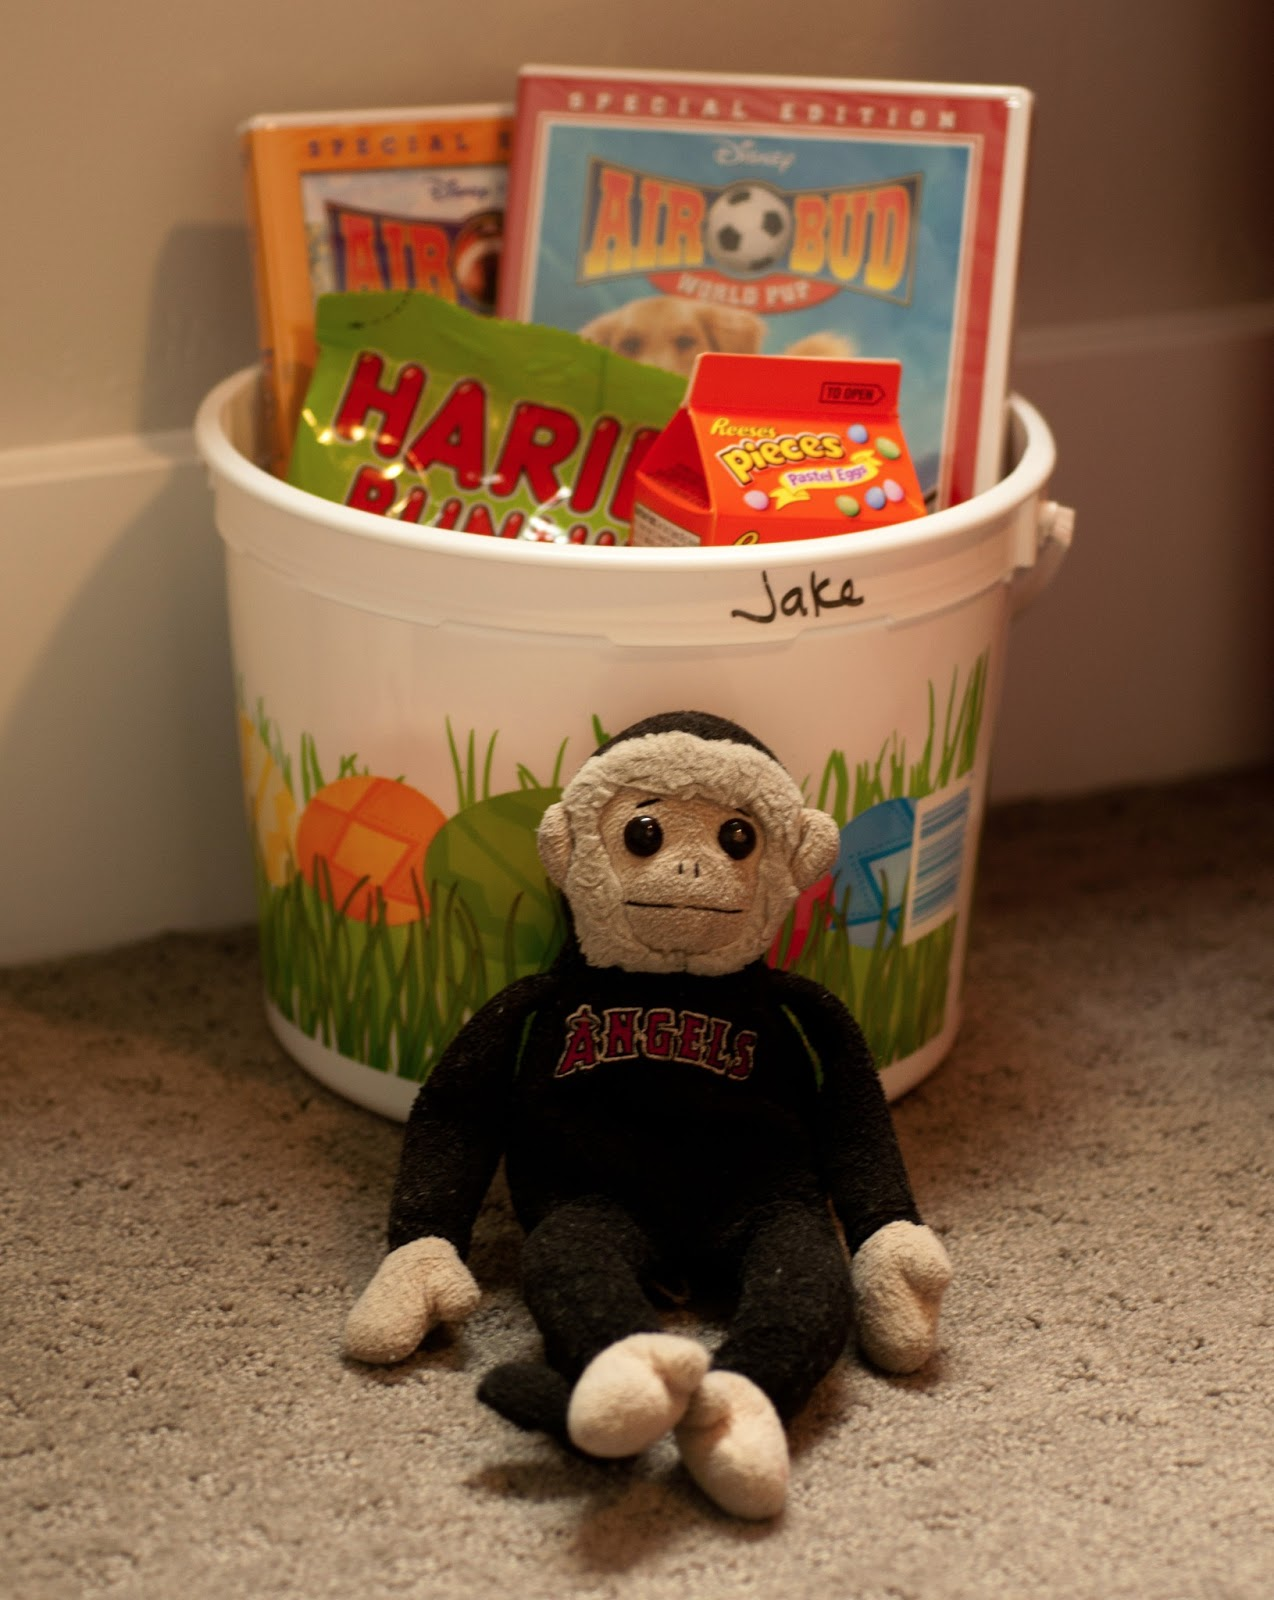 tuna, tuna the monkey, angels, angels mascot, rally monkey, reeses pieces pastel eggs, gummy bears, haribo, air bud, airbud, airbud movies, monkey, easter basket, kids easter basket, eggs, egg